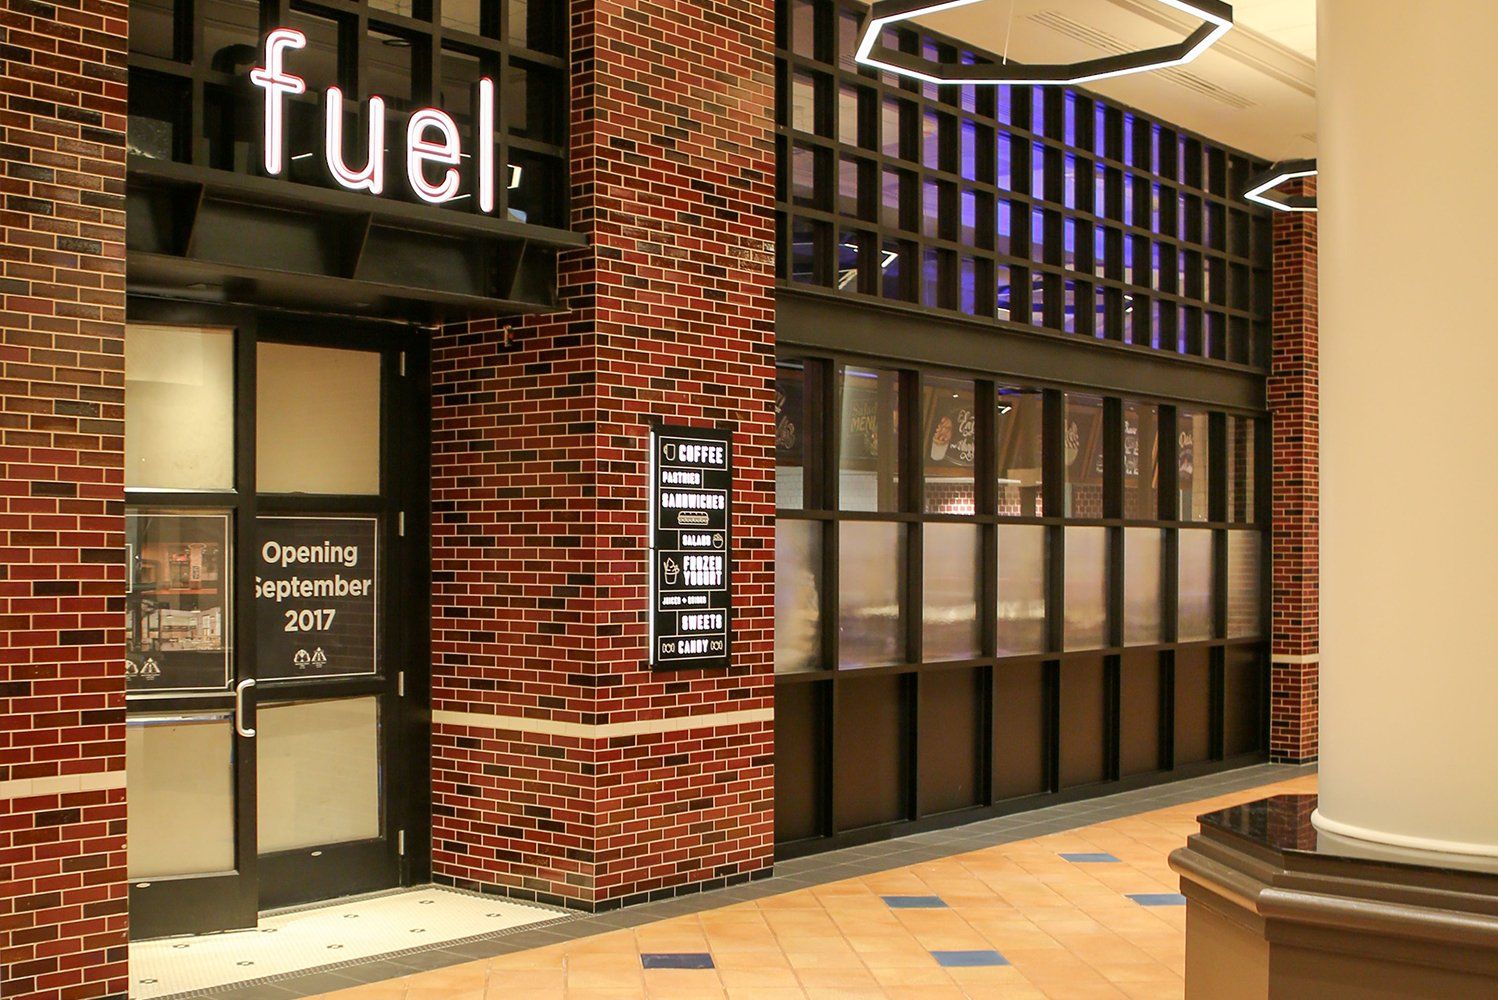 The resort built a completely new dining venue, fuel, located in the Dolphin lobby.